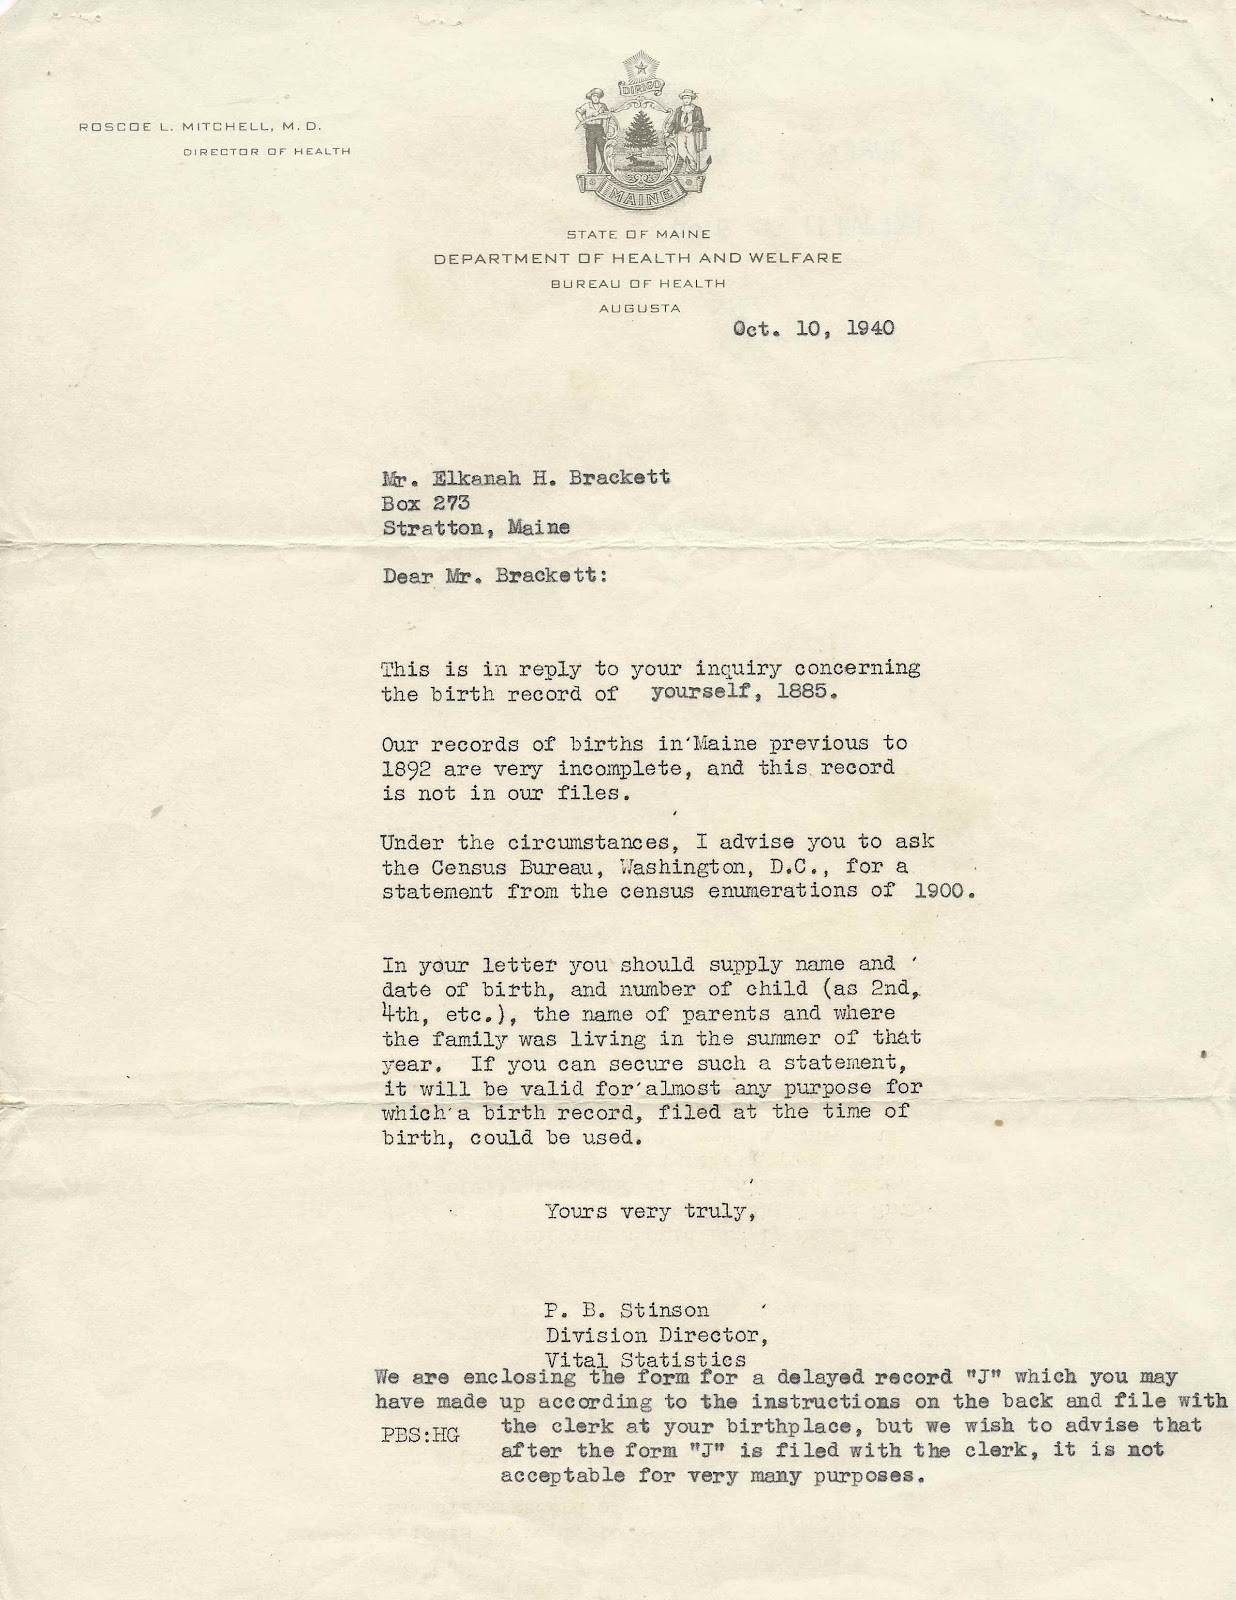 1940 letter from the state of maine to elkanah herbert brackett of october 10 1940 form letter reply from p b stinson director of the division of vital statistics of the state of maine department of health and welfare altavistaventures Image collections